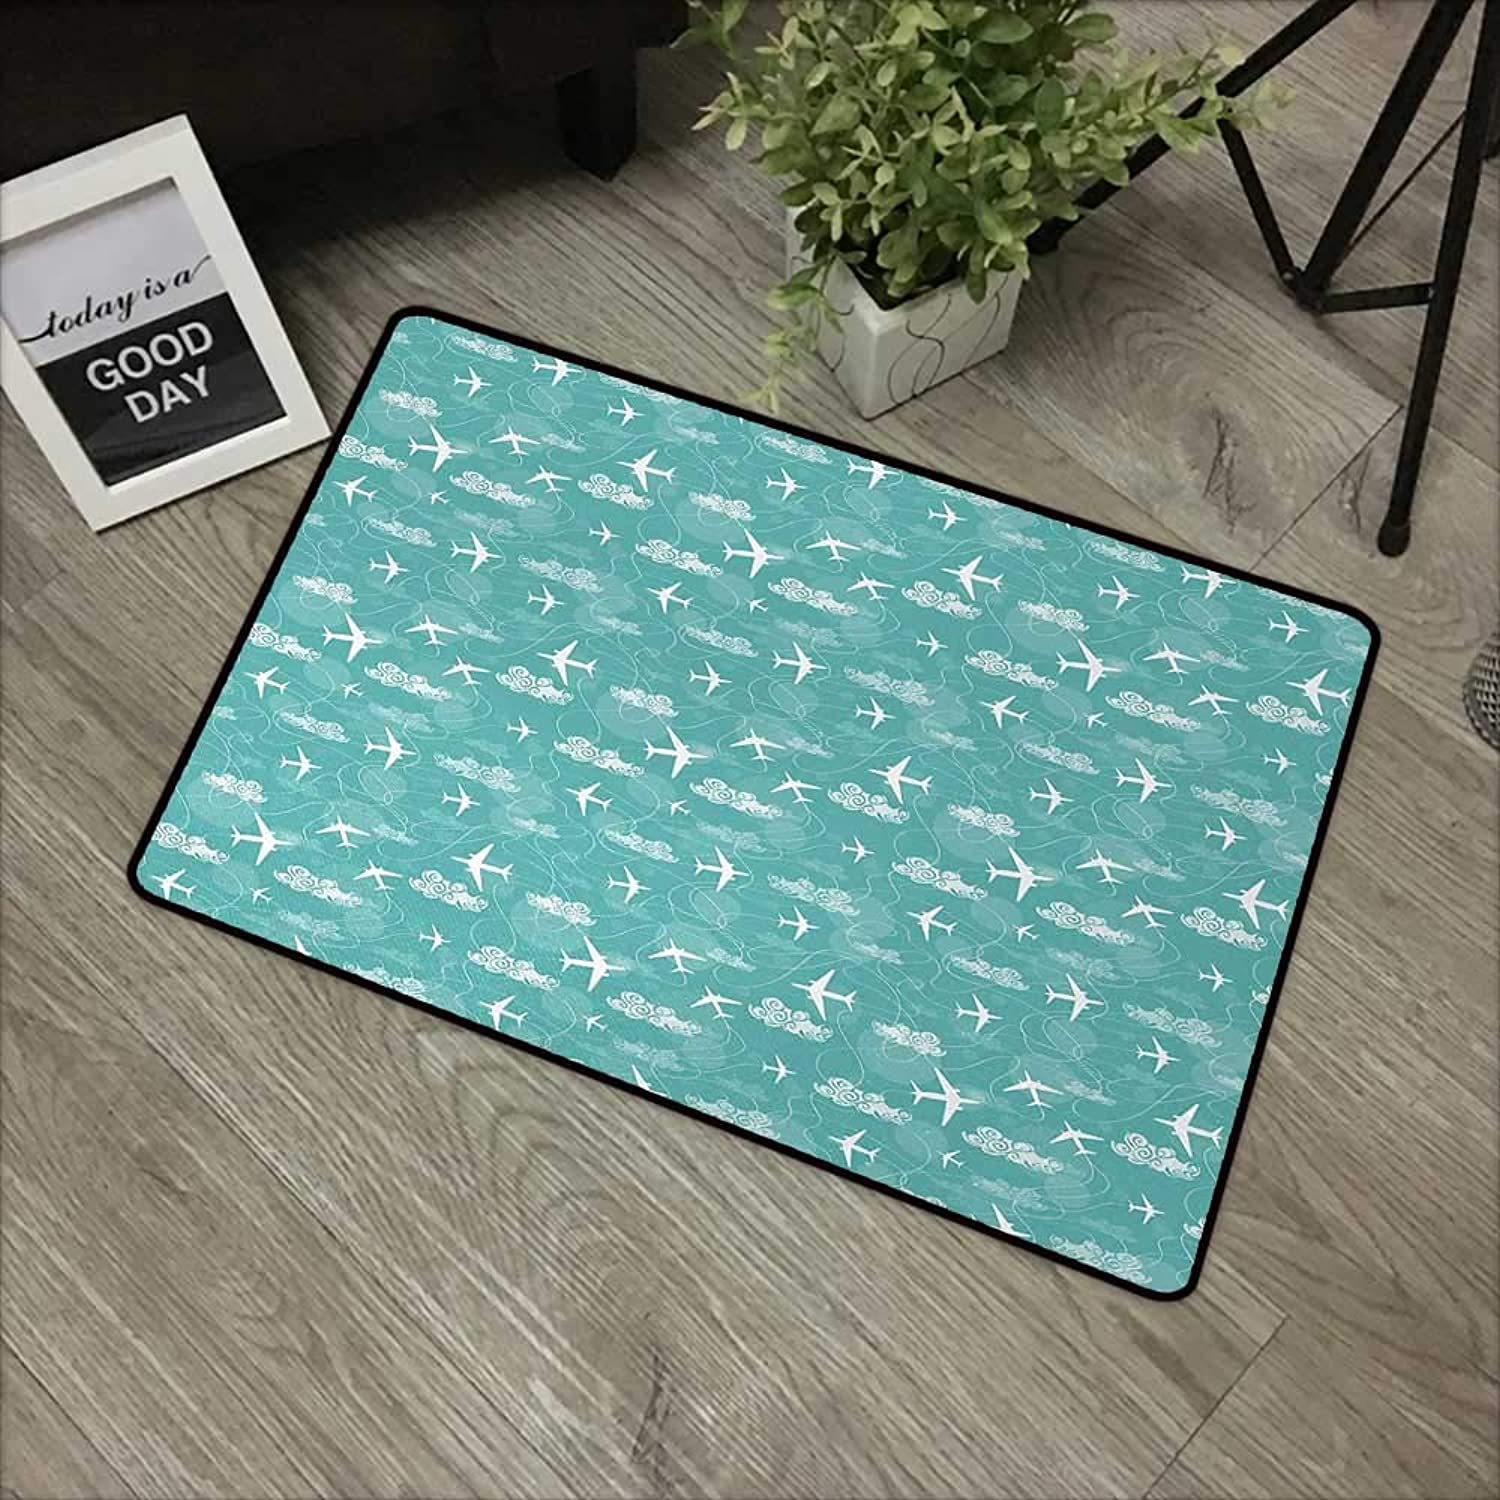 Living Room Door mat W35 x L59 INCH Airplane,Disoriented Flying Jets in Clear Sky with Curly Clouds Travel Vacation Theme,Turquoise White Non-Slip, with Non-Slip Backing,Non-Slip Door Mat Carpet